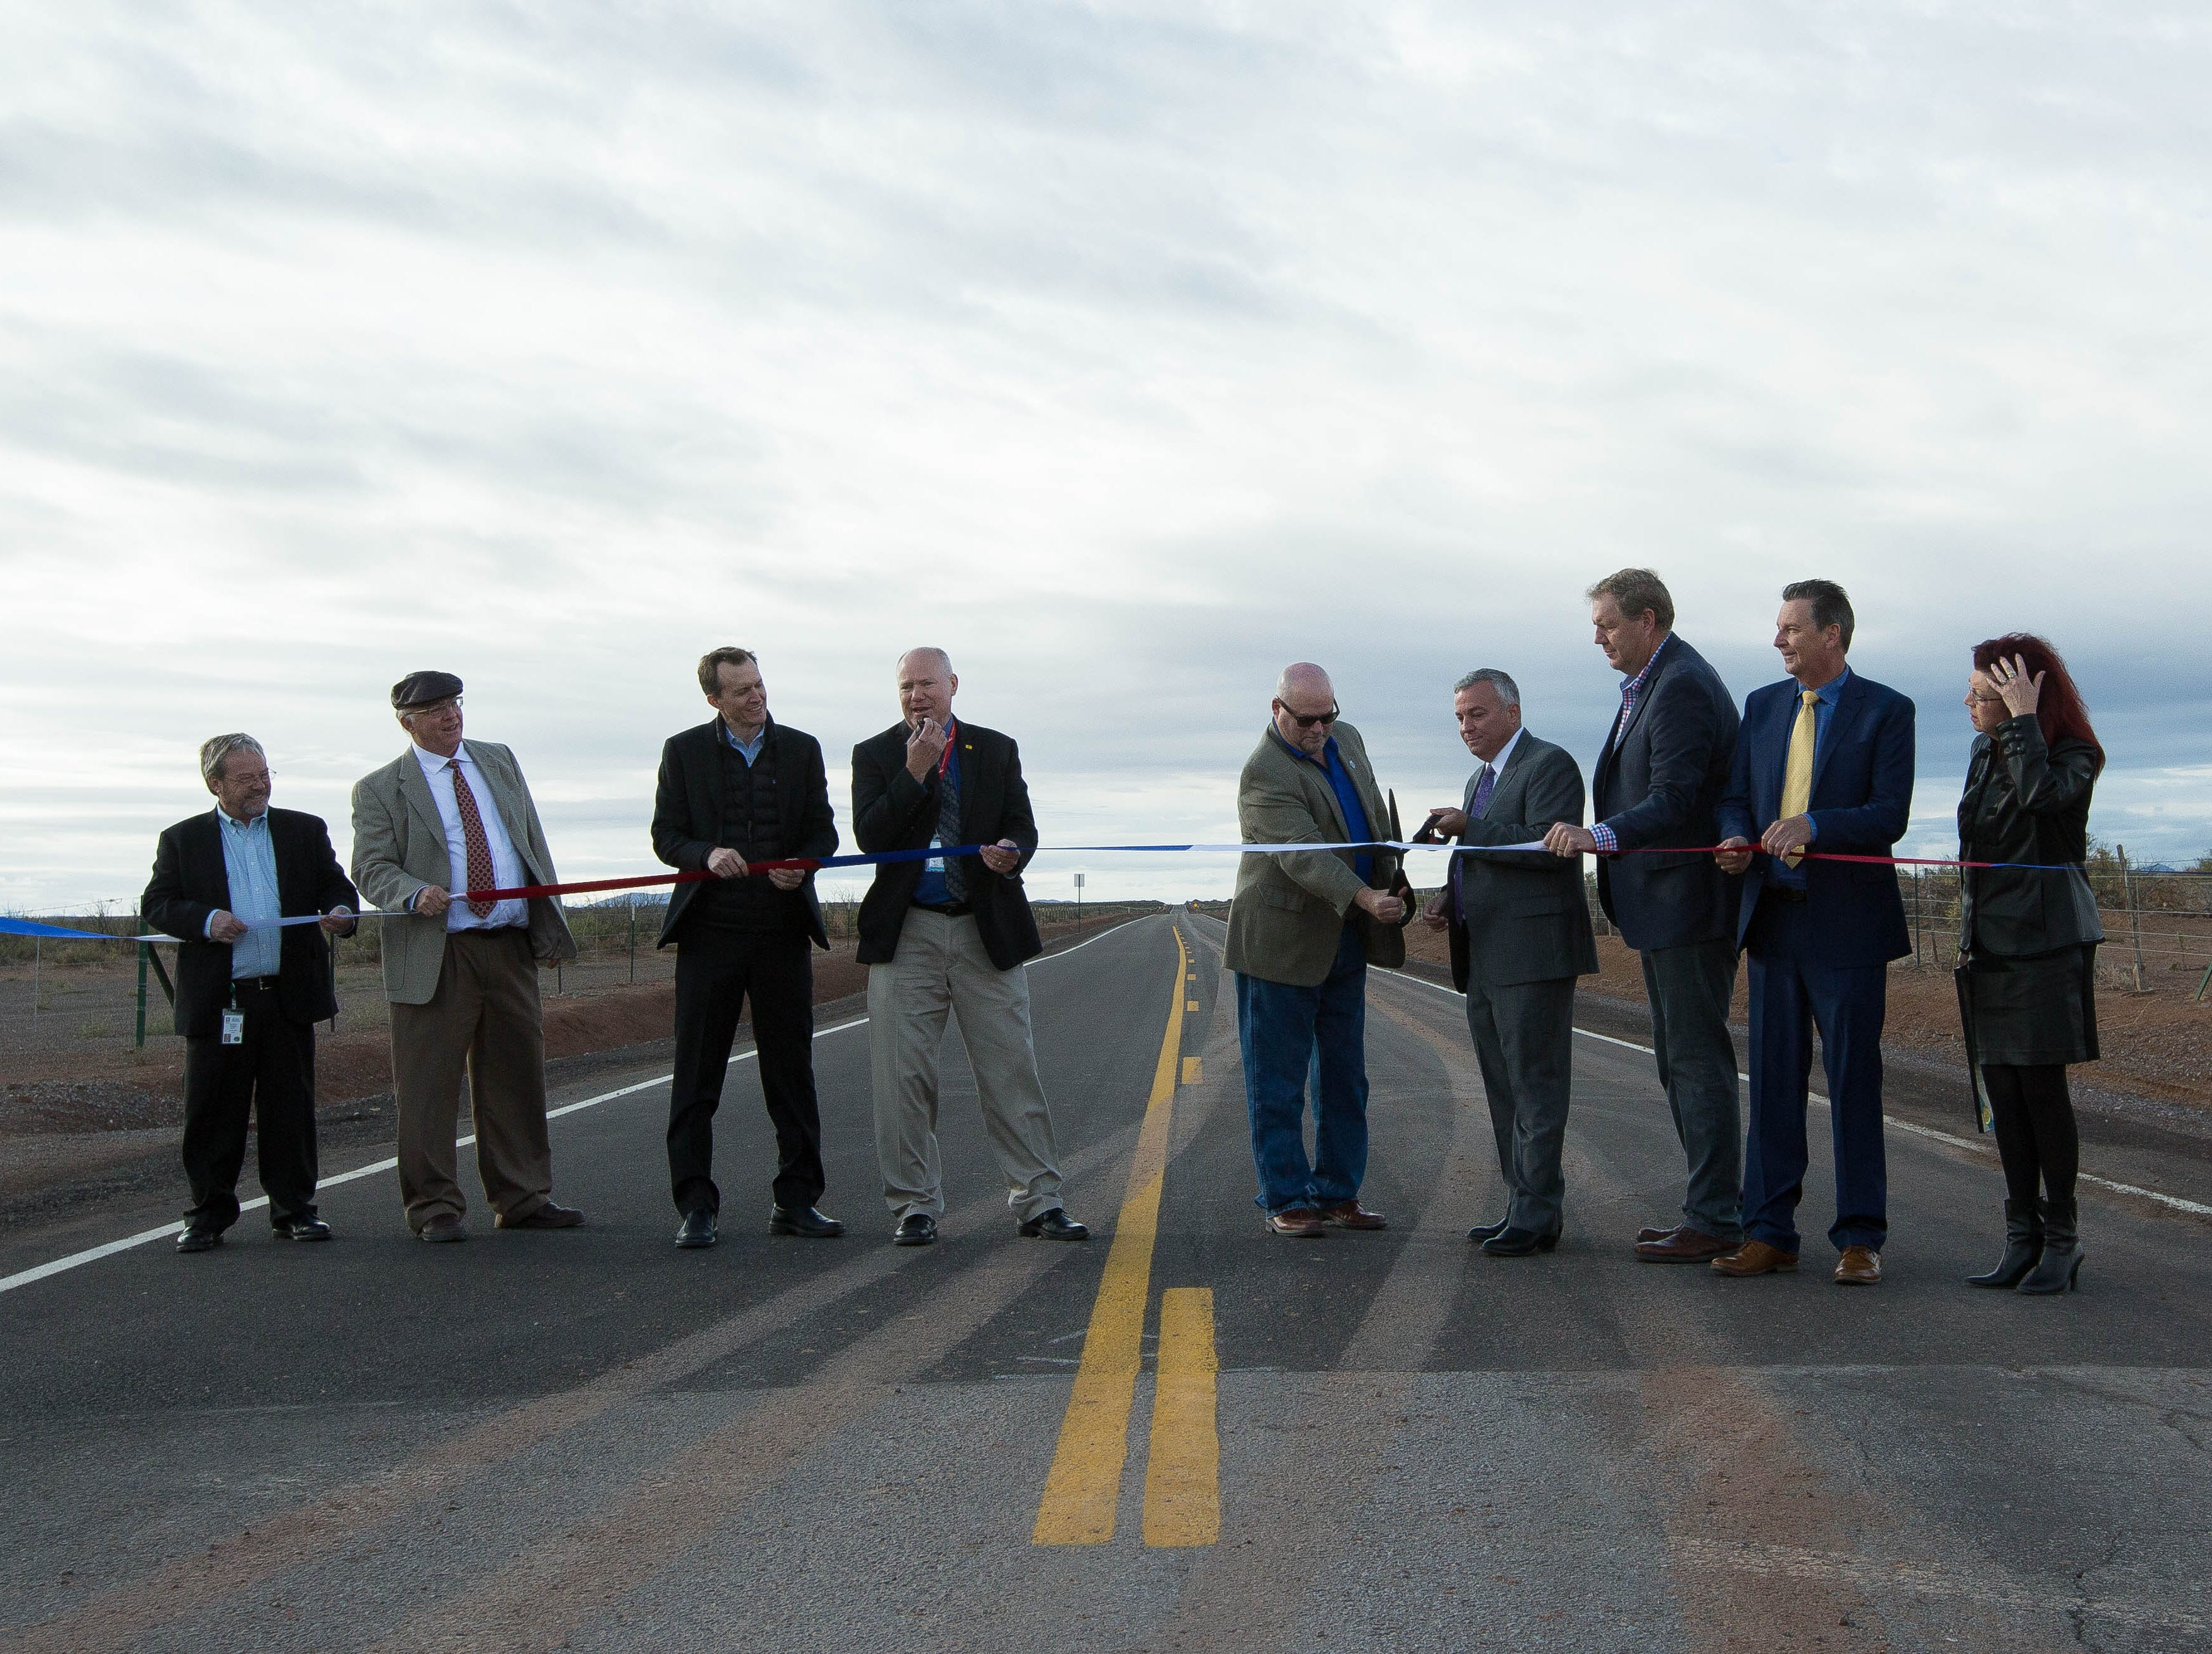 Officials cut ribbon to celebrate opening of southern road to spaceport